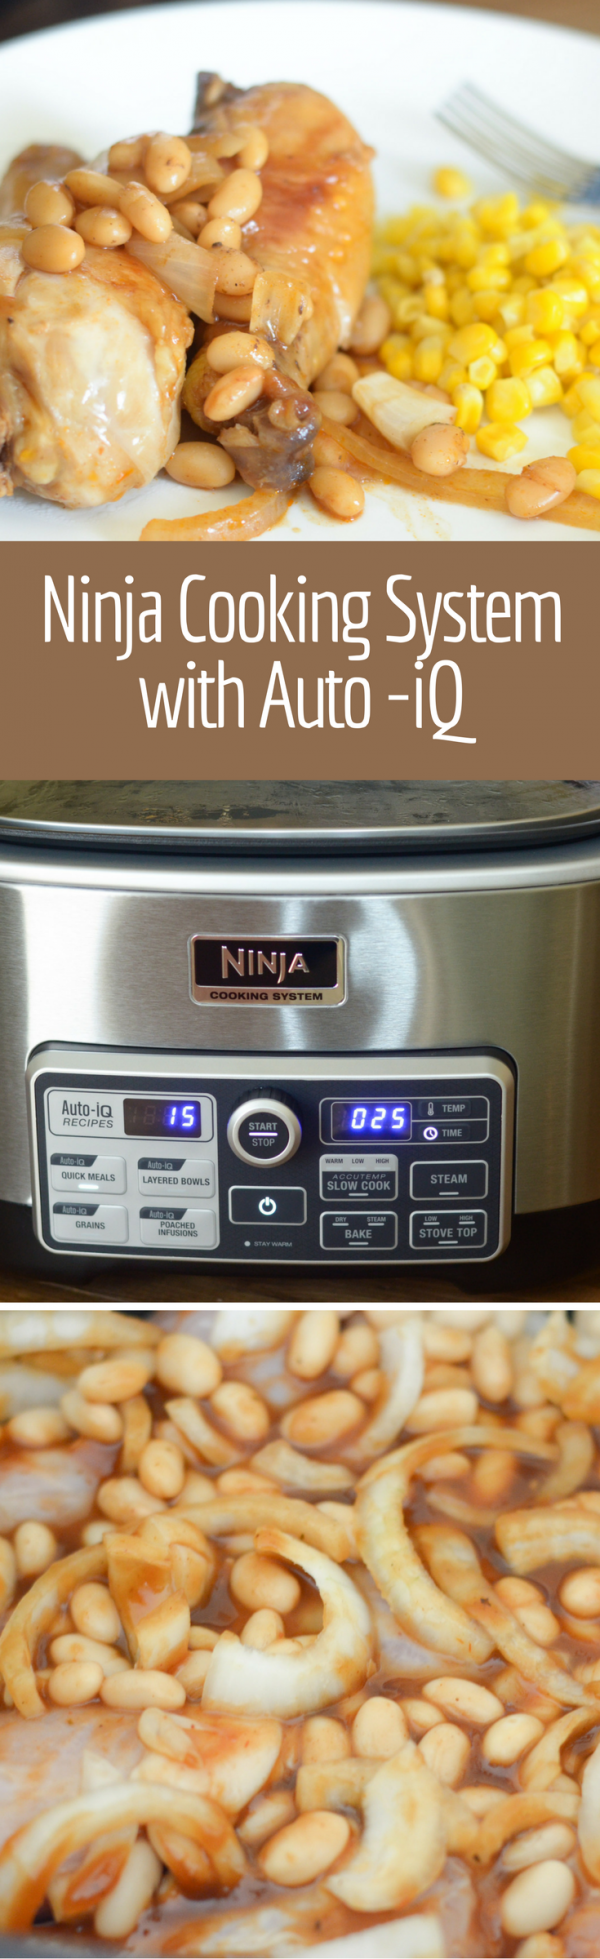 Ninja Cooking System with Auto-iQ #NinjaDeliciouslyDoneEasy #NinjaPartner #Ad #IC